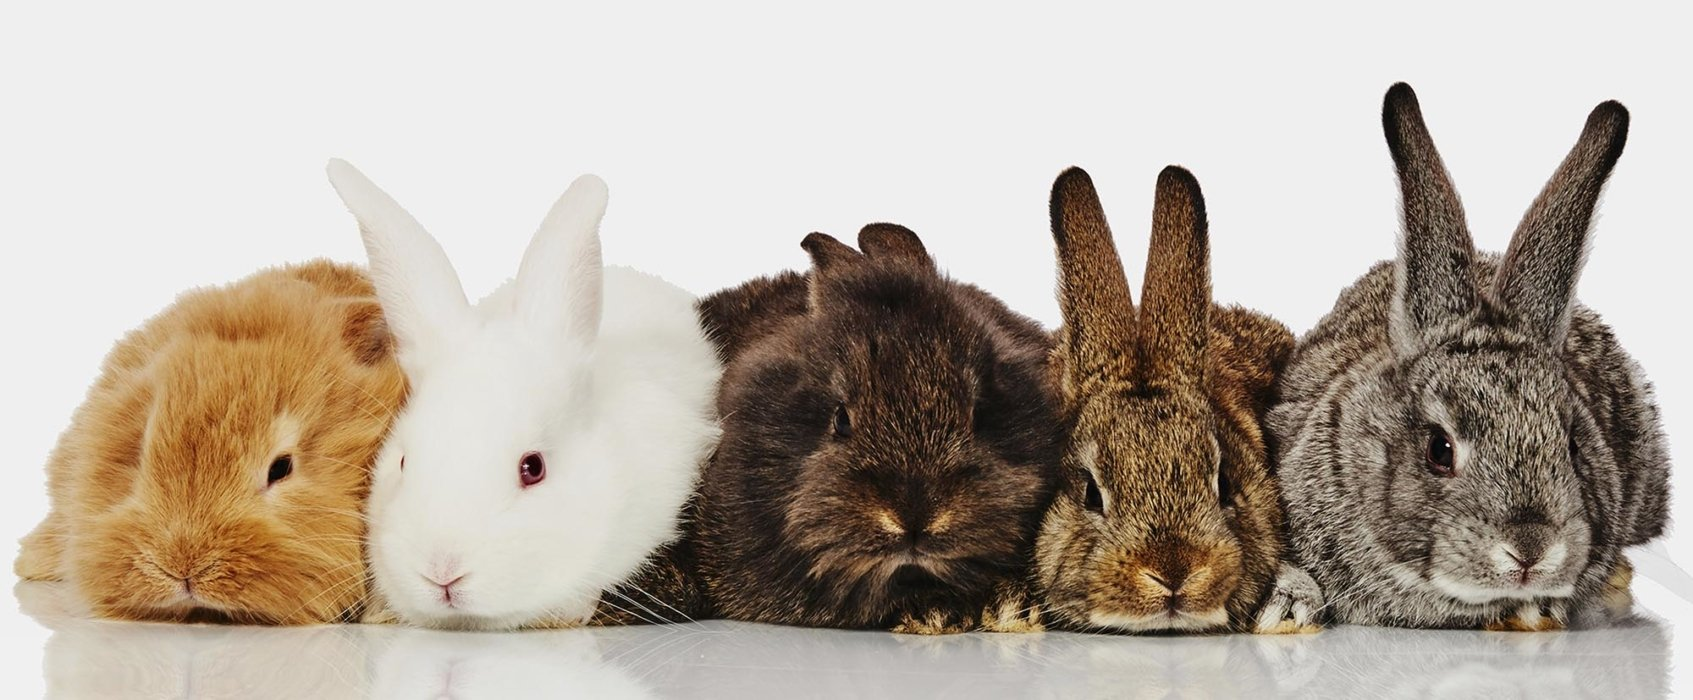 Bunnies in a row